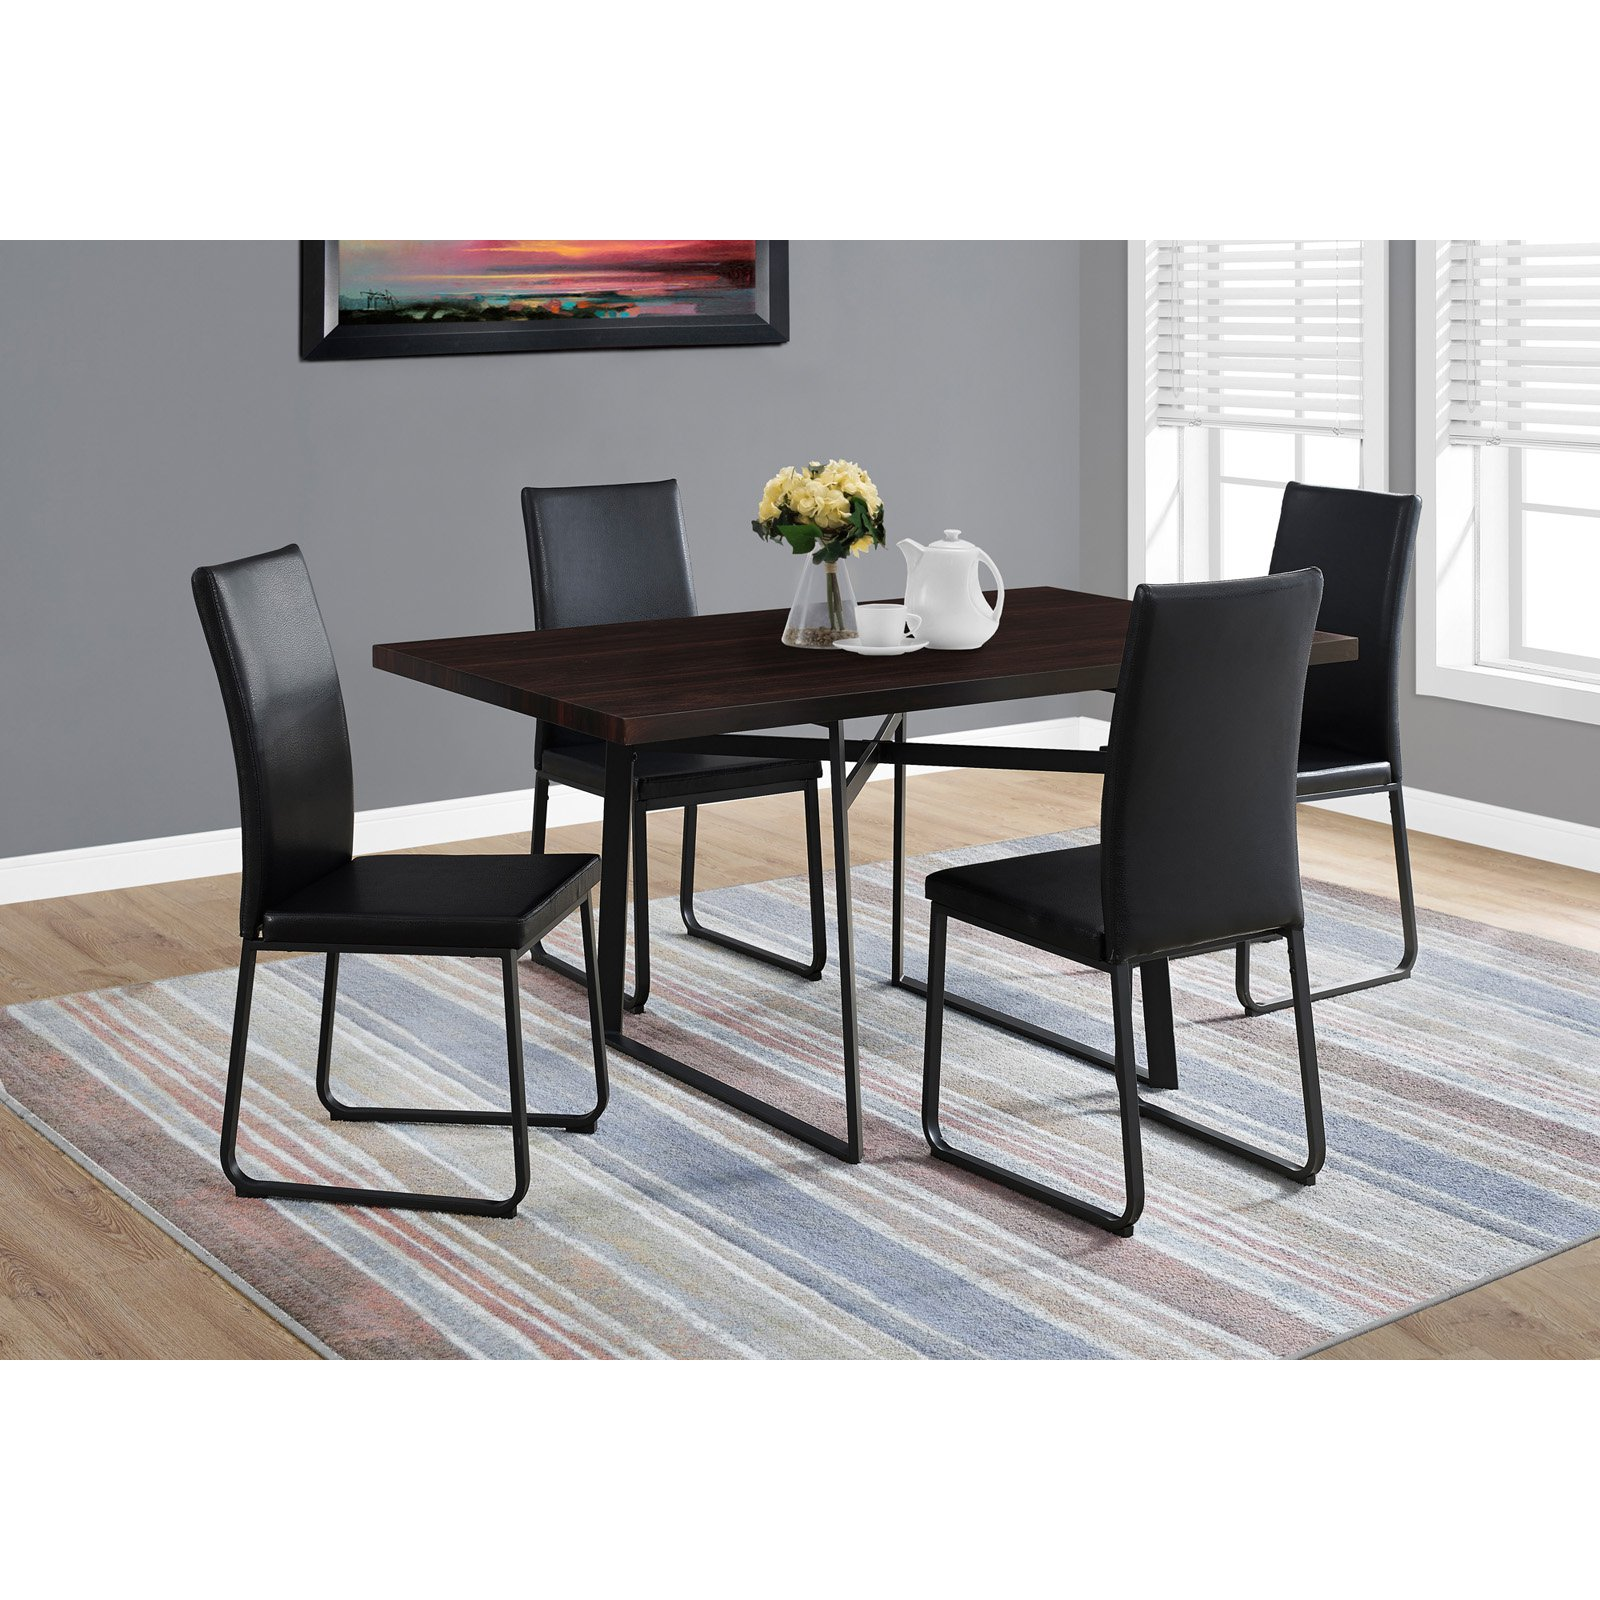 Monarch Specialties 60 in. Rectangular Dining Table - Cappuccino